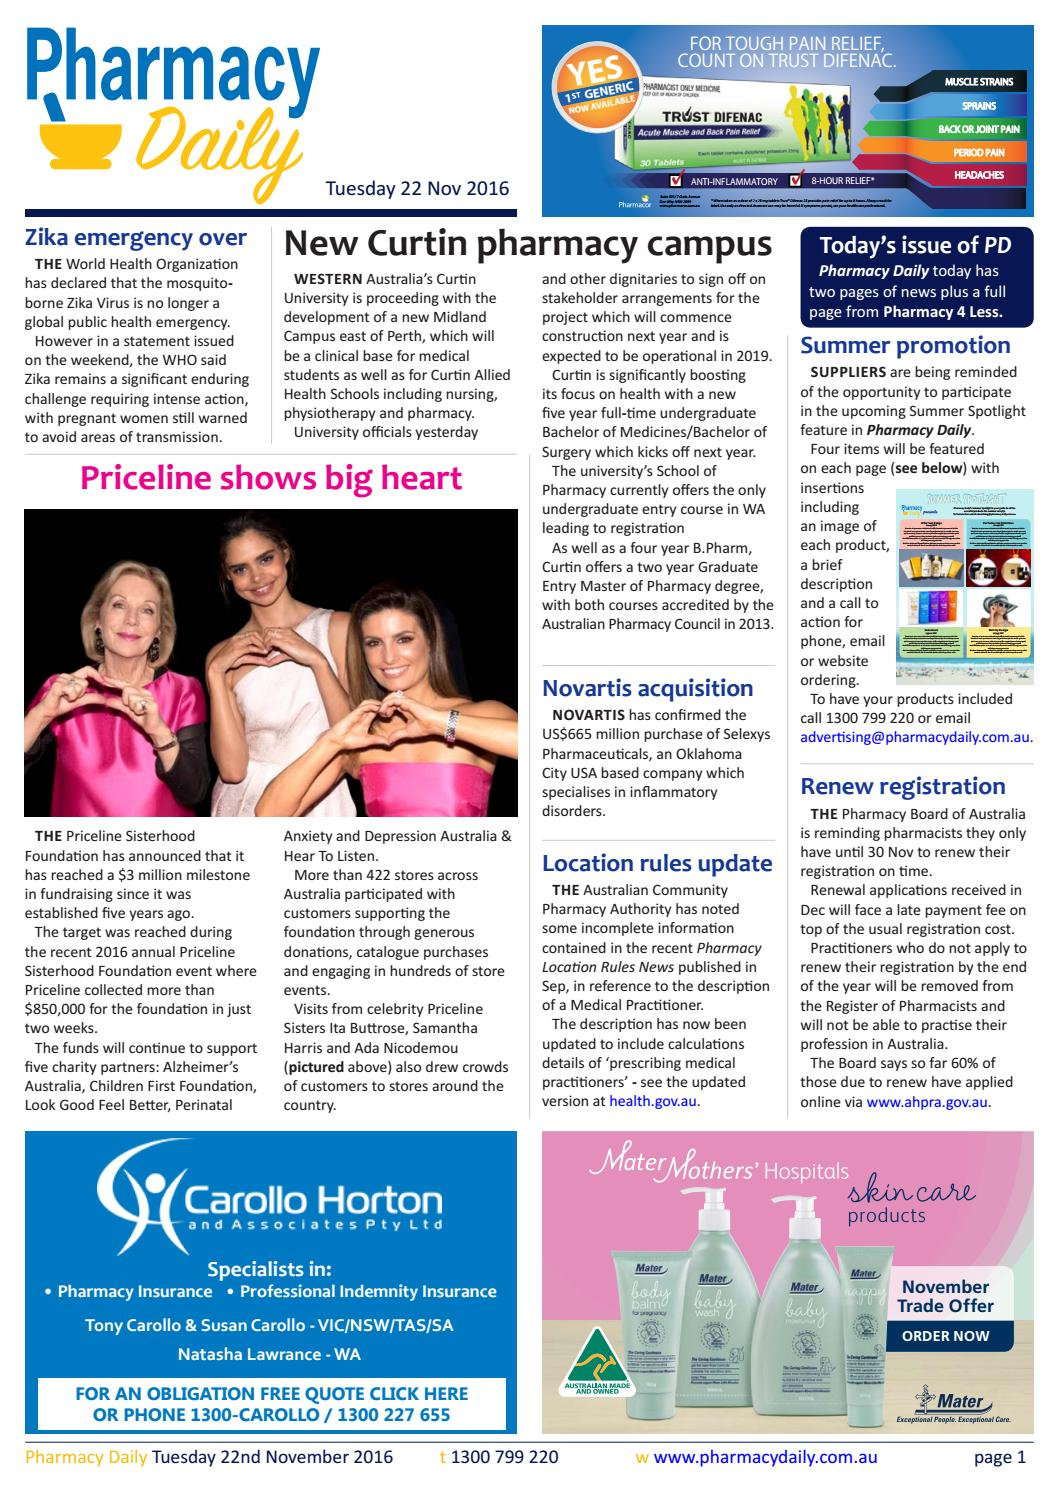 PD for Tue 22 Nov 2016 - Curtin Pharmacy, SHPA workforce paper